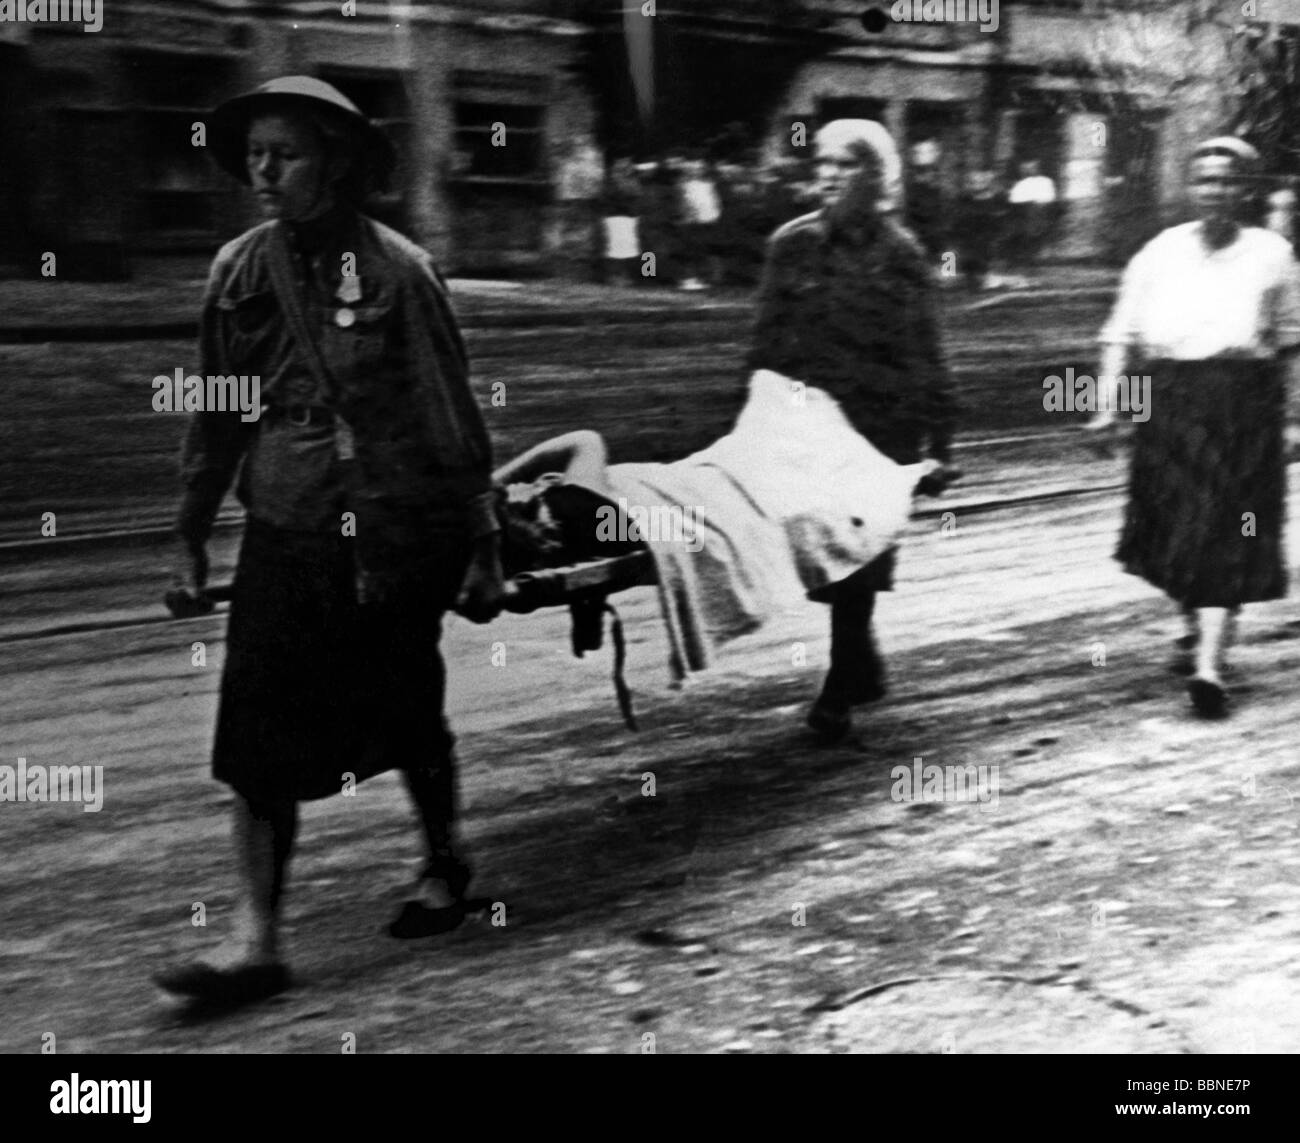 events, Second World War / WWII, Russia, Leningrad, siege, September 1941 - January 1944, ambulance women carrying - Stock Image